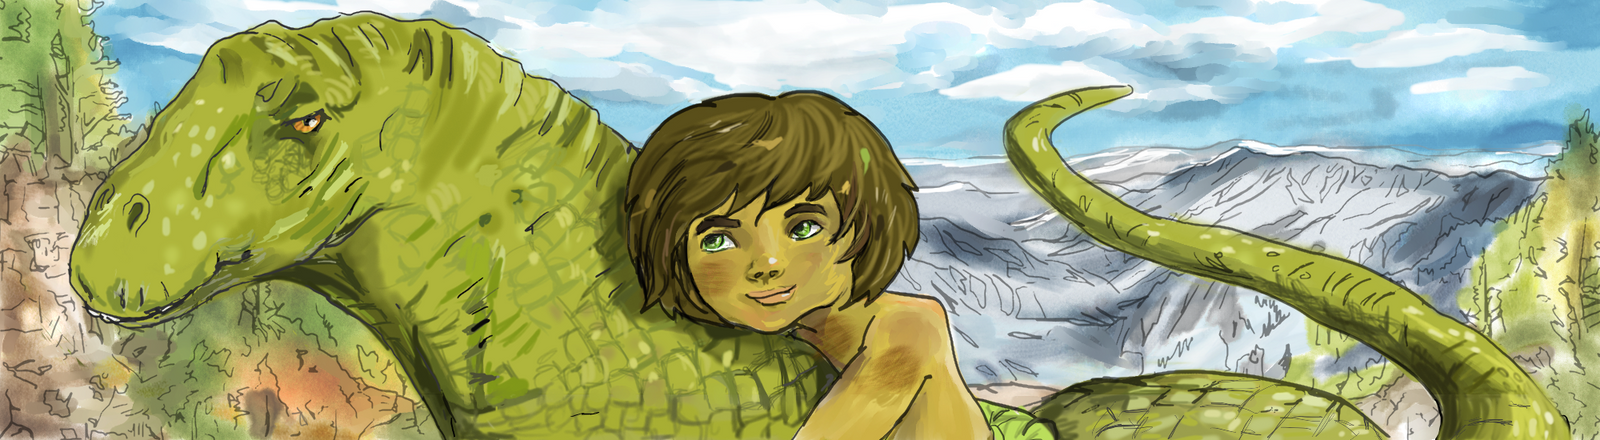 The Good Dinosaur Submission by Jodee